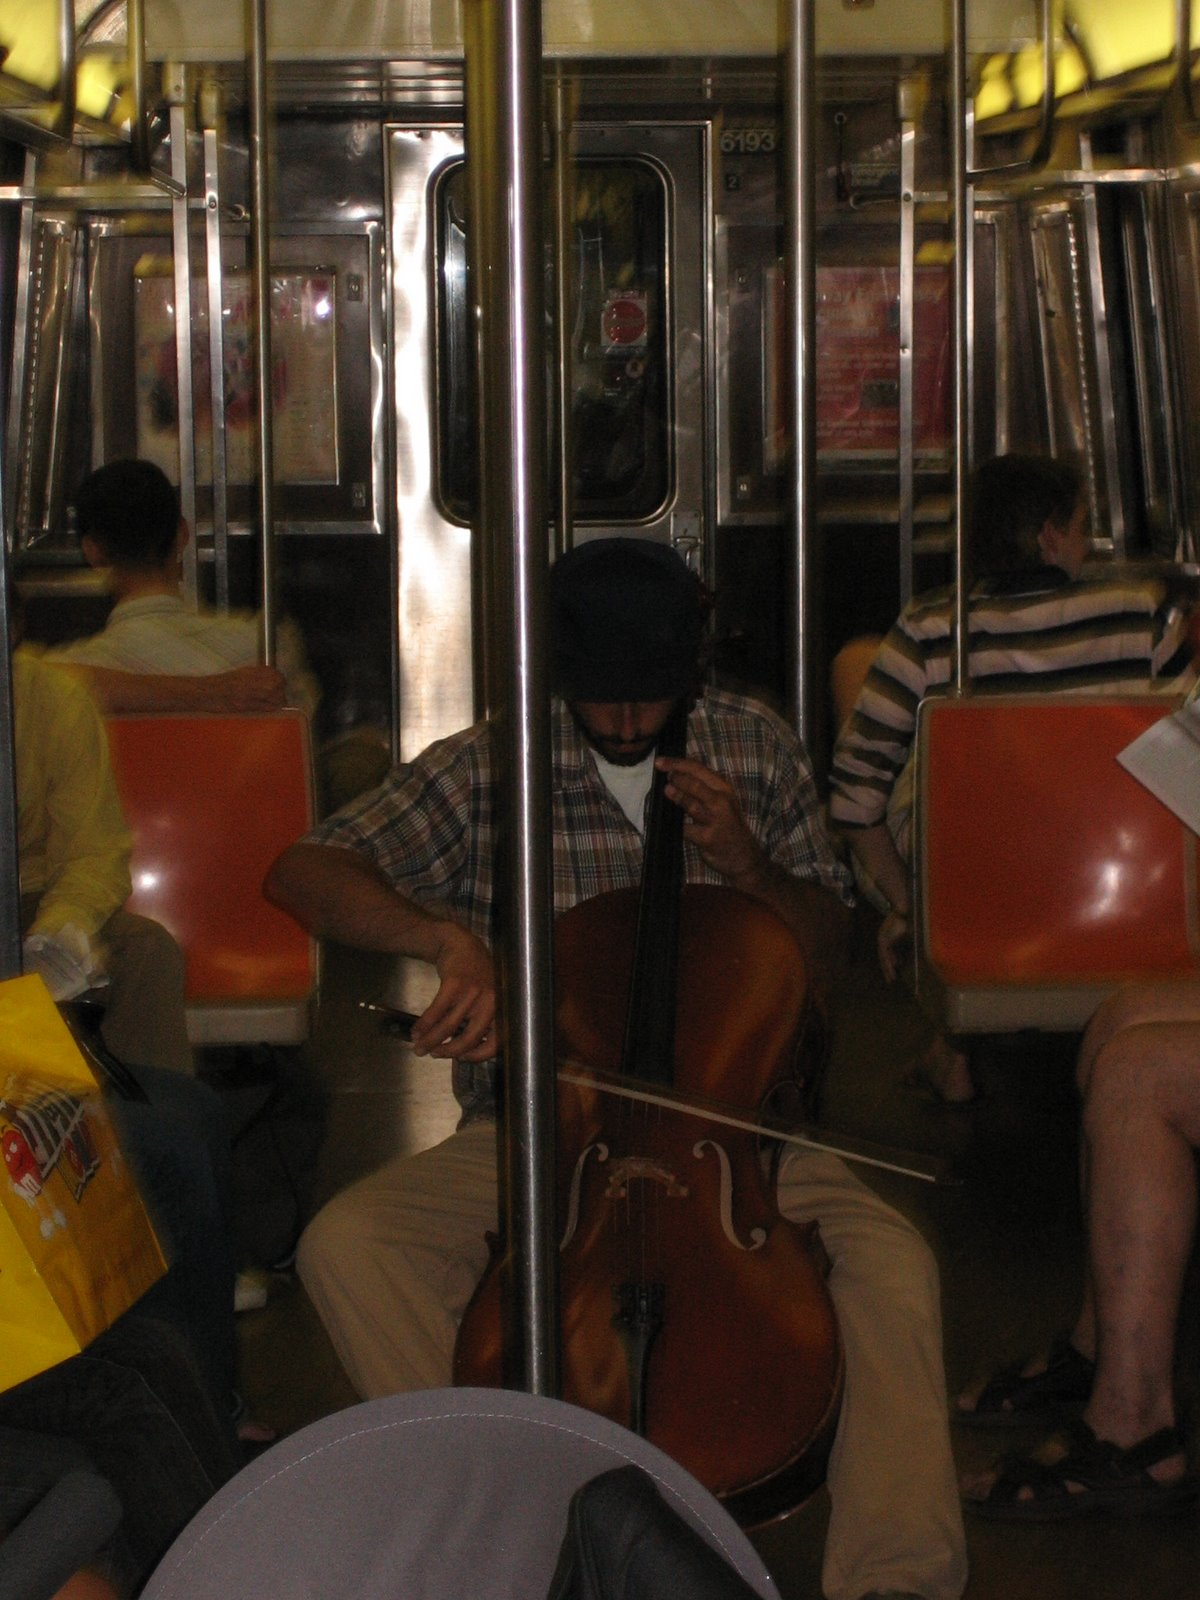 A cellist playing on a moving